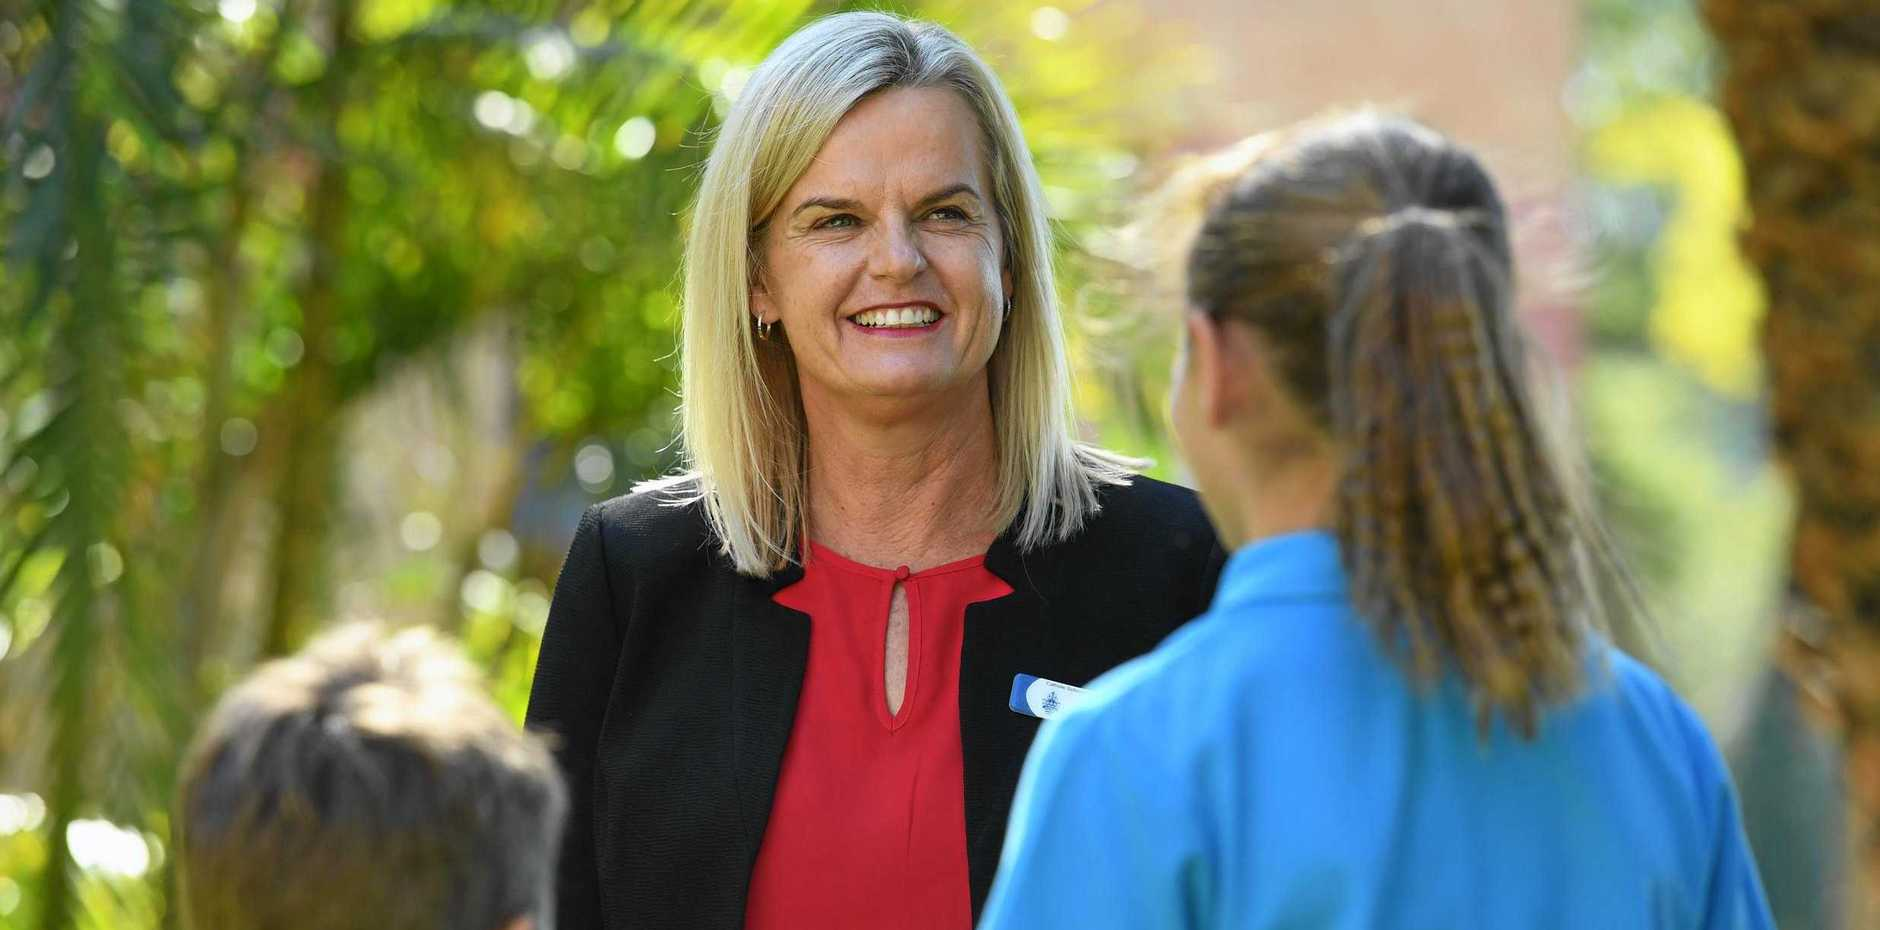 THE BOSS: Dr Sally Towns is the new Diocesan Director of Catholic Schools and the Chief Executive Officer of the Diocese of Lismore Catholic Schools Ltd.